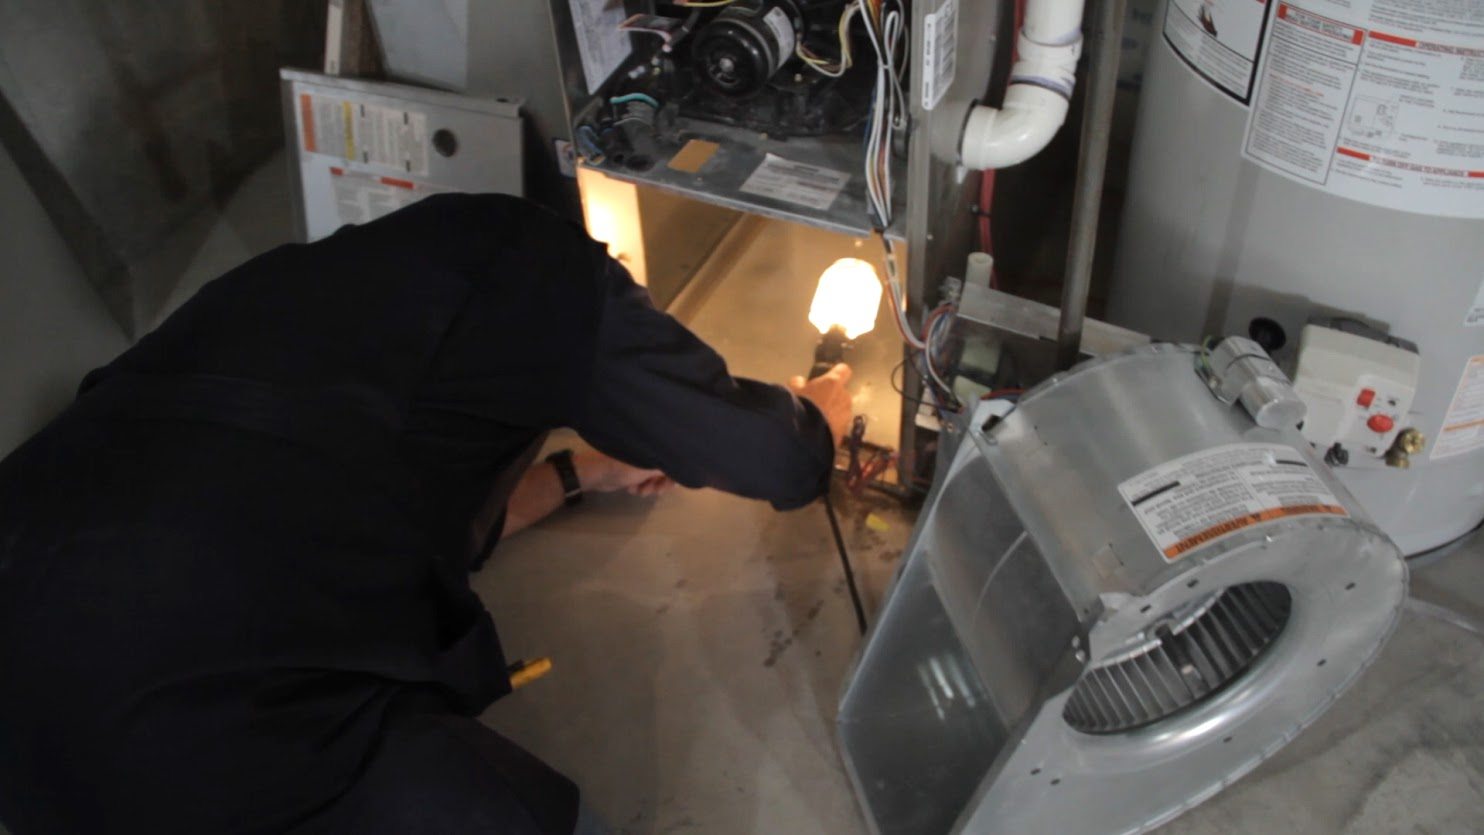 #A57226 How To Clean Re Heat Coils Located Within High Efficiency  Recommended 4217 How To Clean The Furnace pics with 1484x835 px on helpvideos.info - Air Conditioners, Air Coolers and more